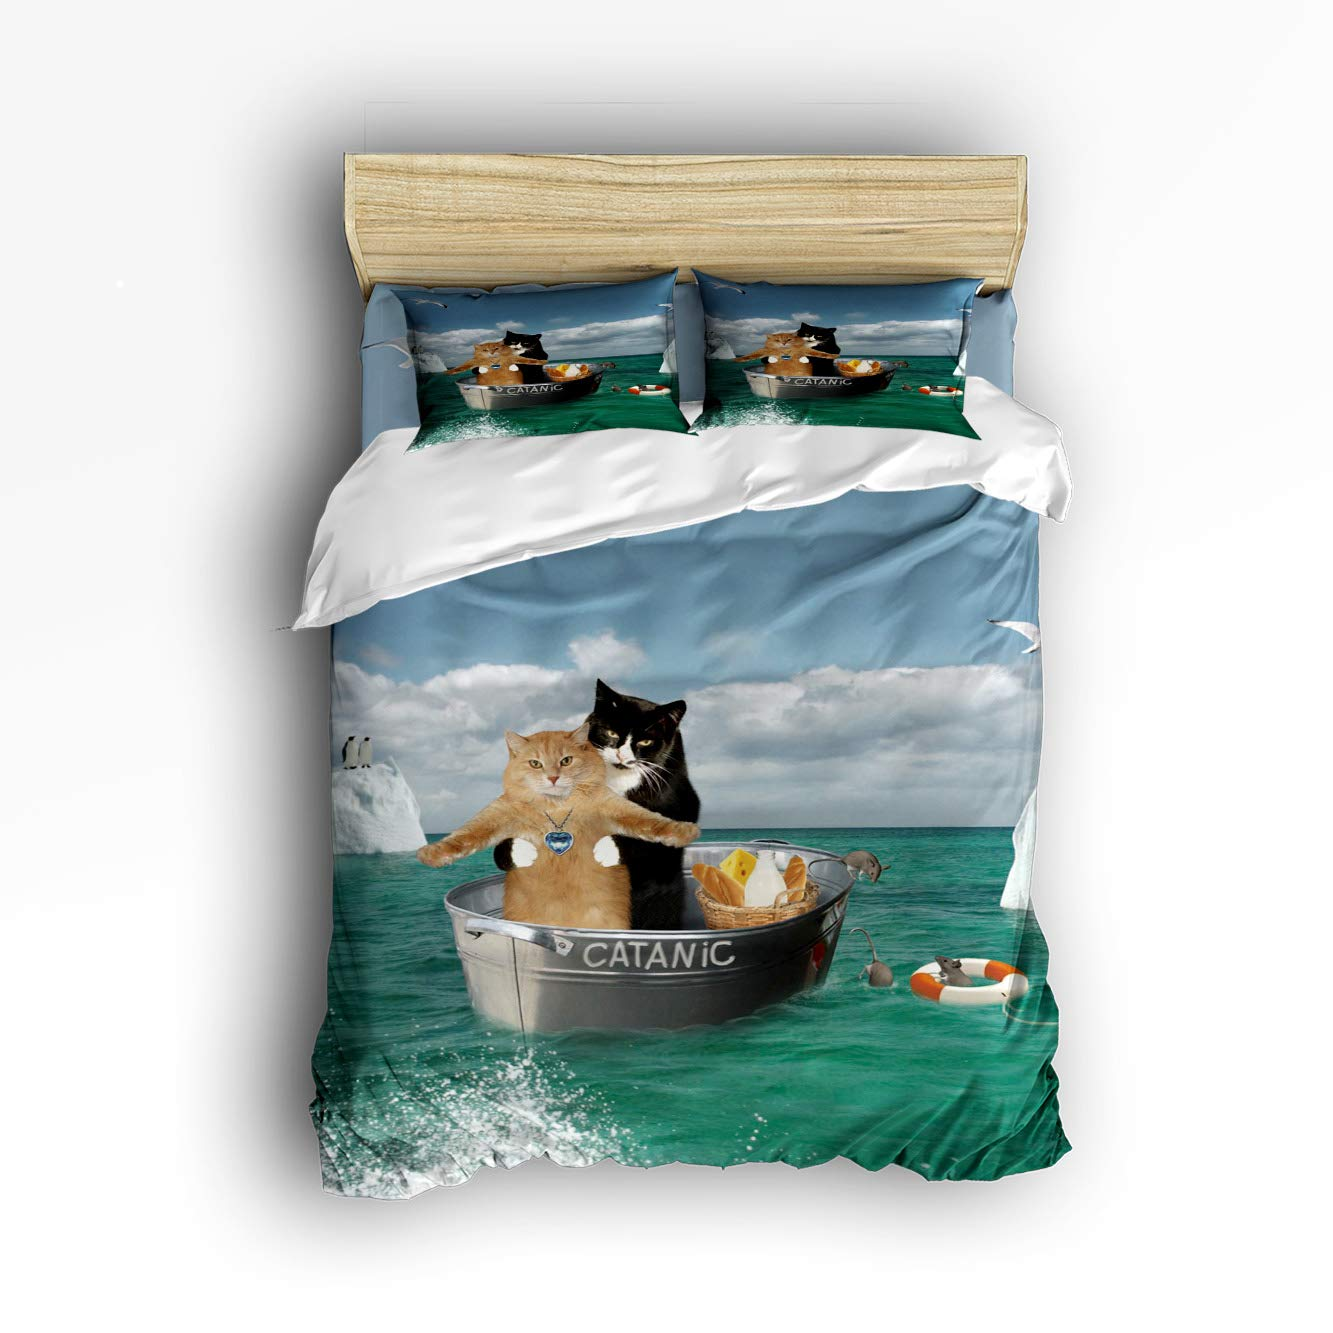 Pink Sky Duvet Cover Set Boys Girls,Cats Sitting on The Bucket Travel at Sea Bed Sheet Set,4 Piece Include 1 Flat Sheet 1 Duvet Cover 2 Pillow Cases Full